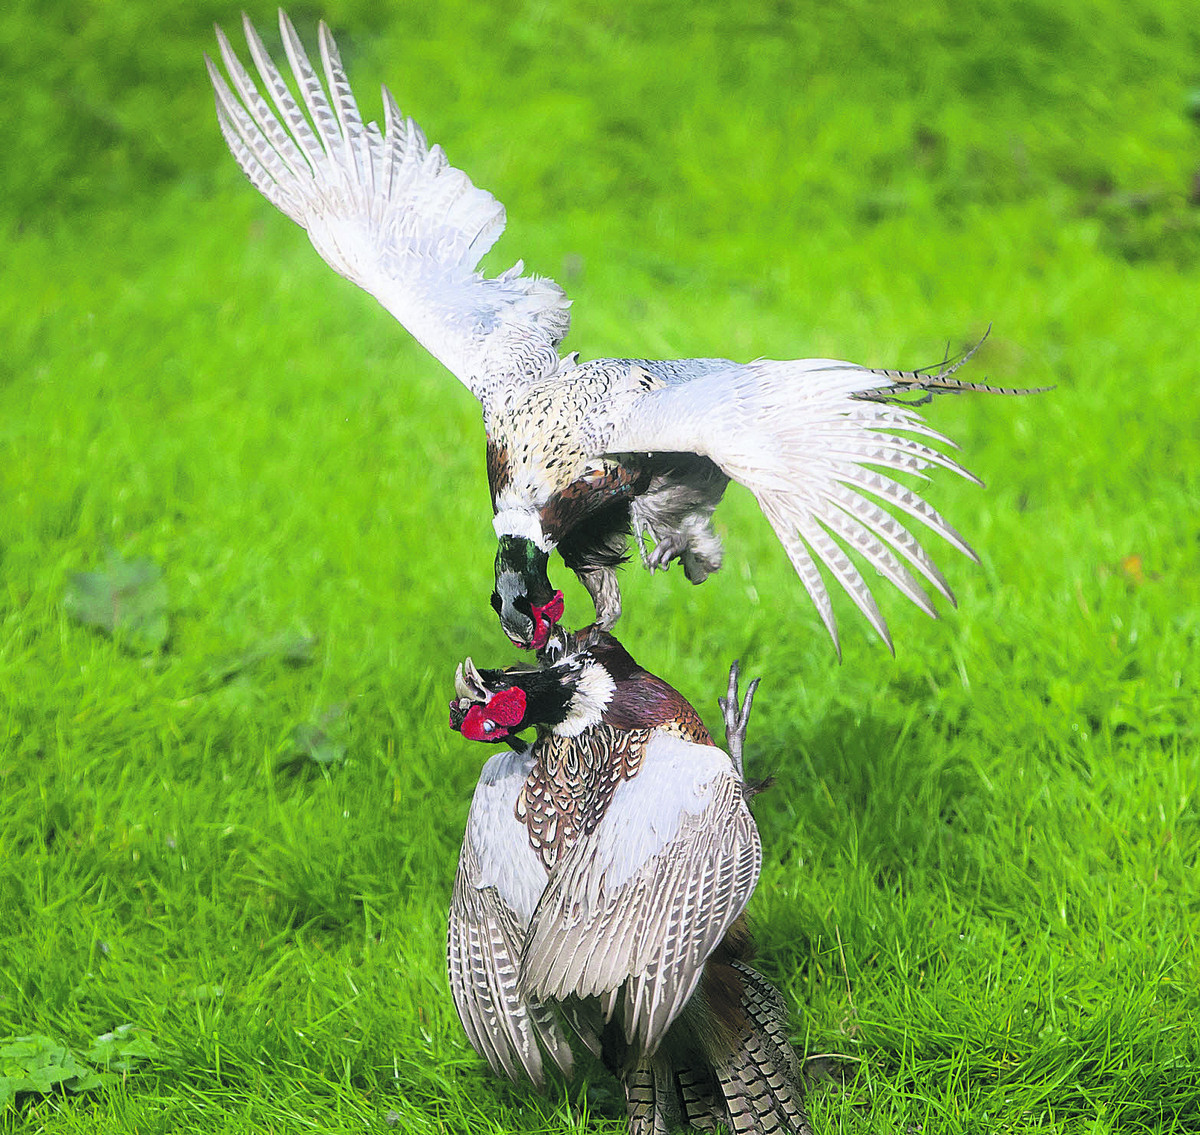 Pheasants fight